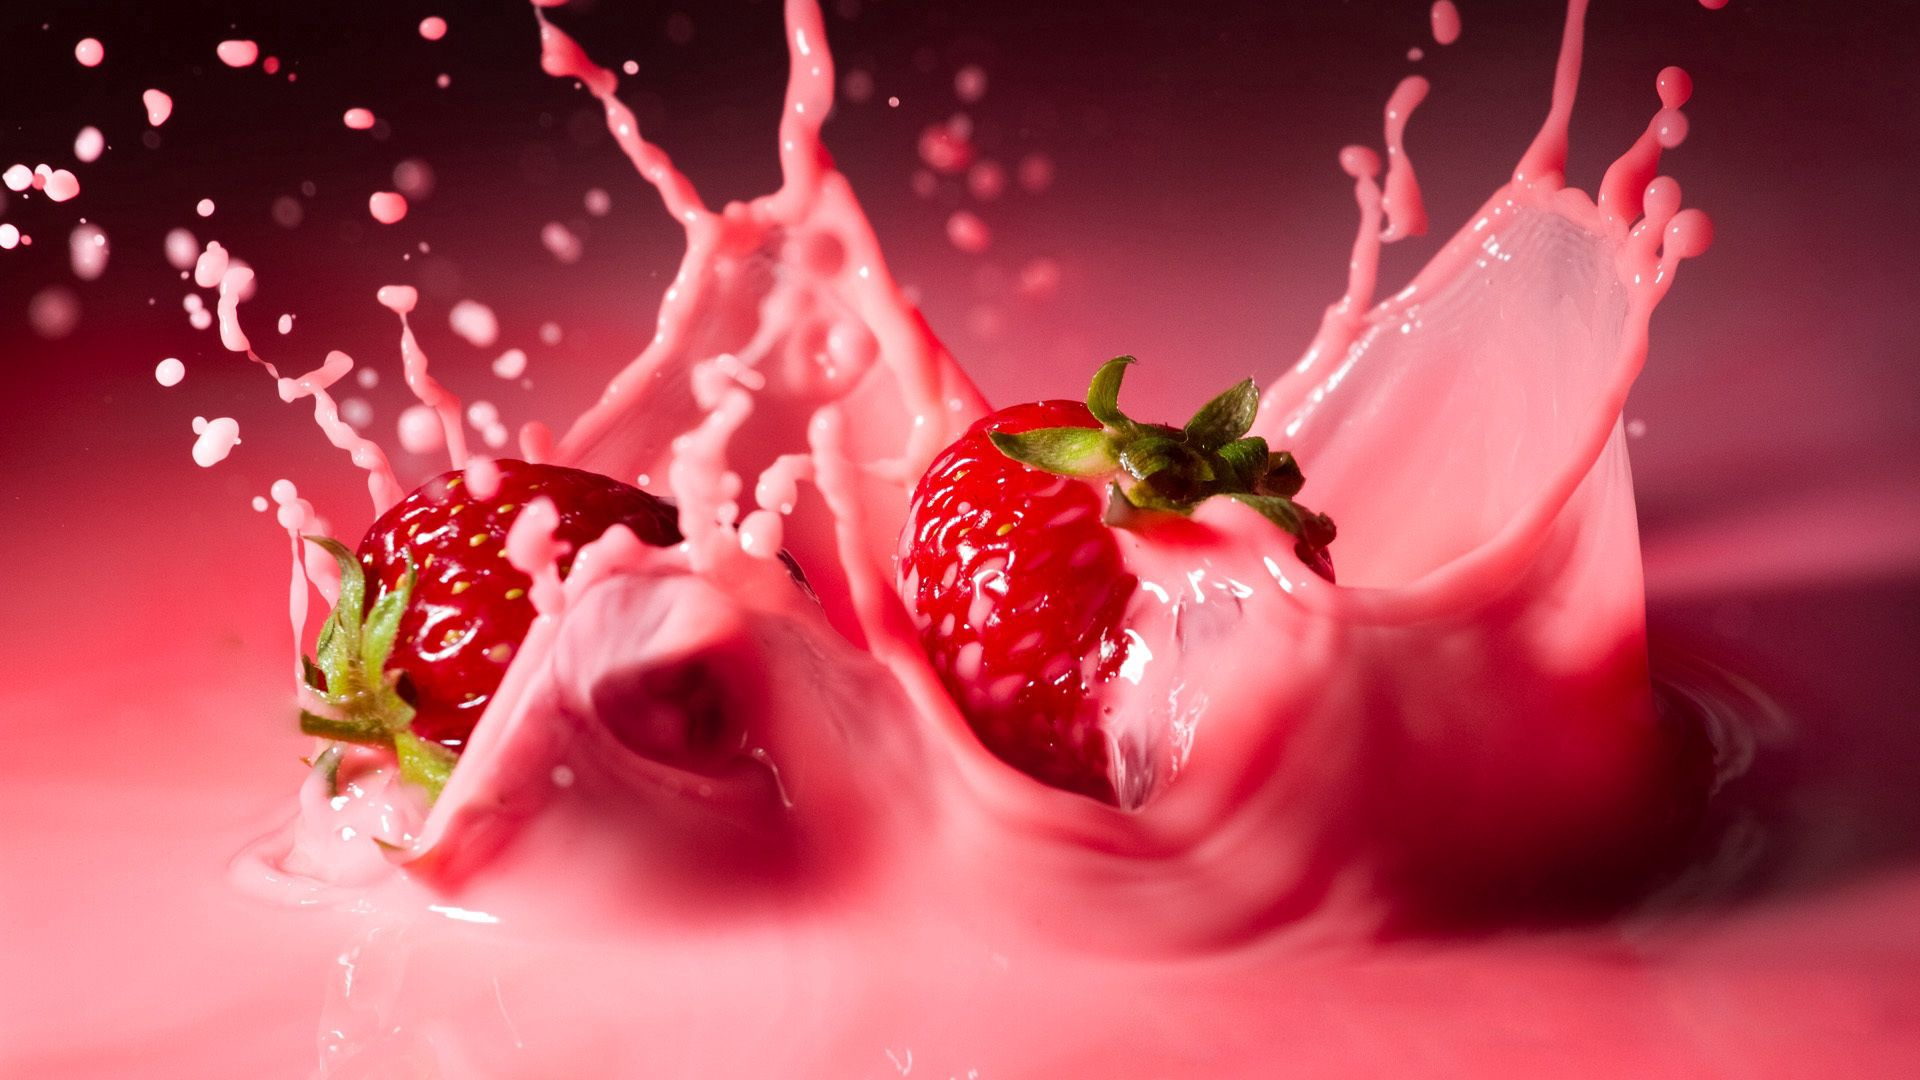 73526 download wallpaper Macro, Strawberry, Spray, Liquid, Splash screensavers and pictures for free